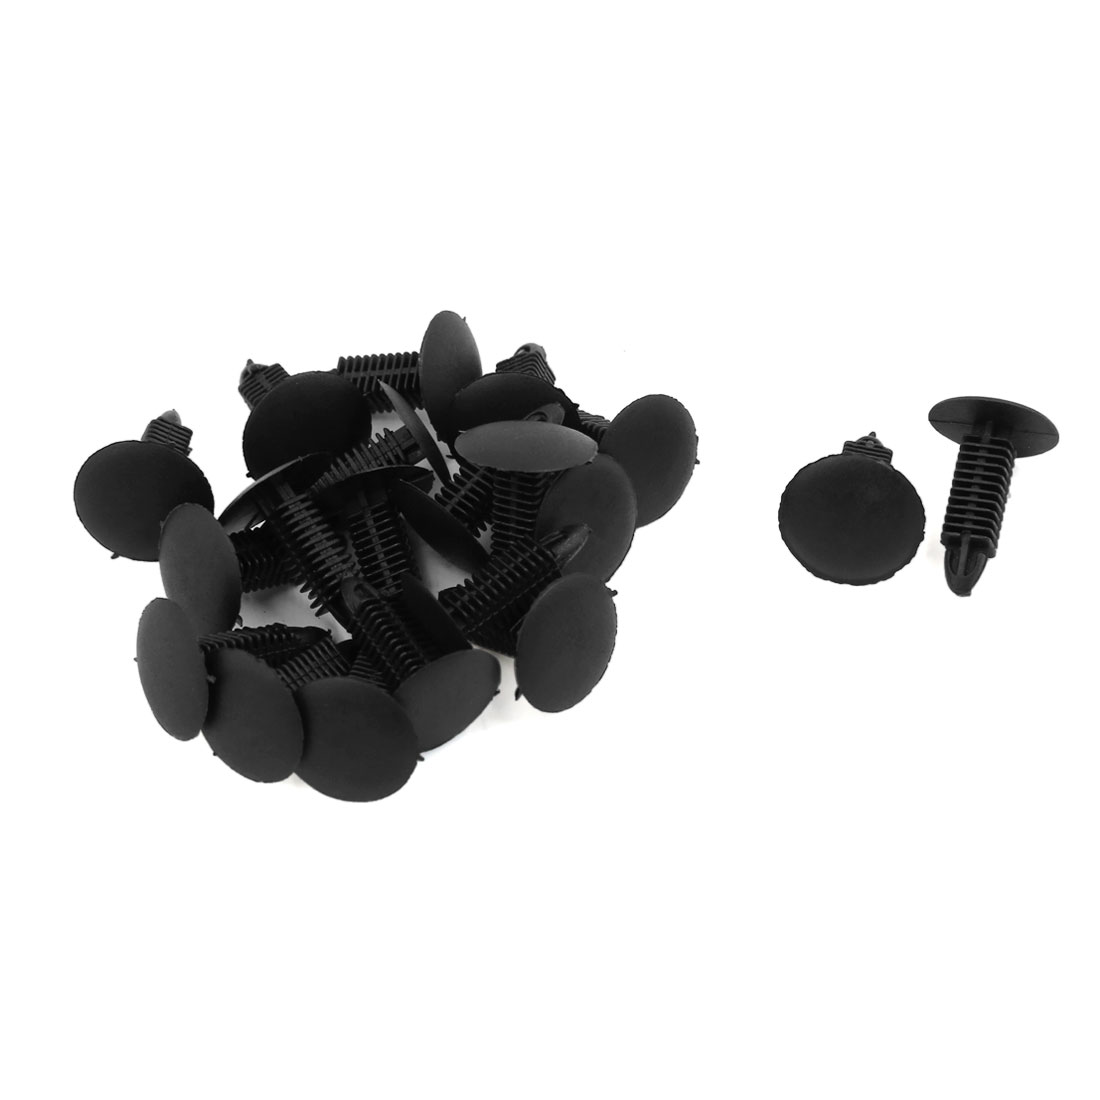 20 Pcs Black Plastic Splash Guard Moulding Bumper Clips 7mm Hole Dia